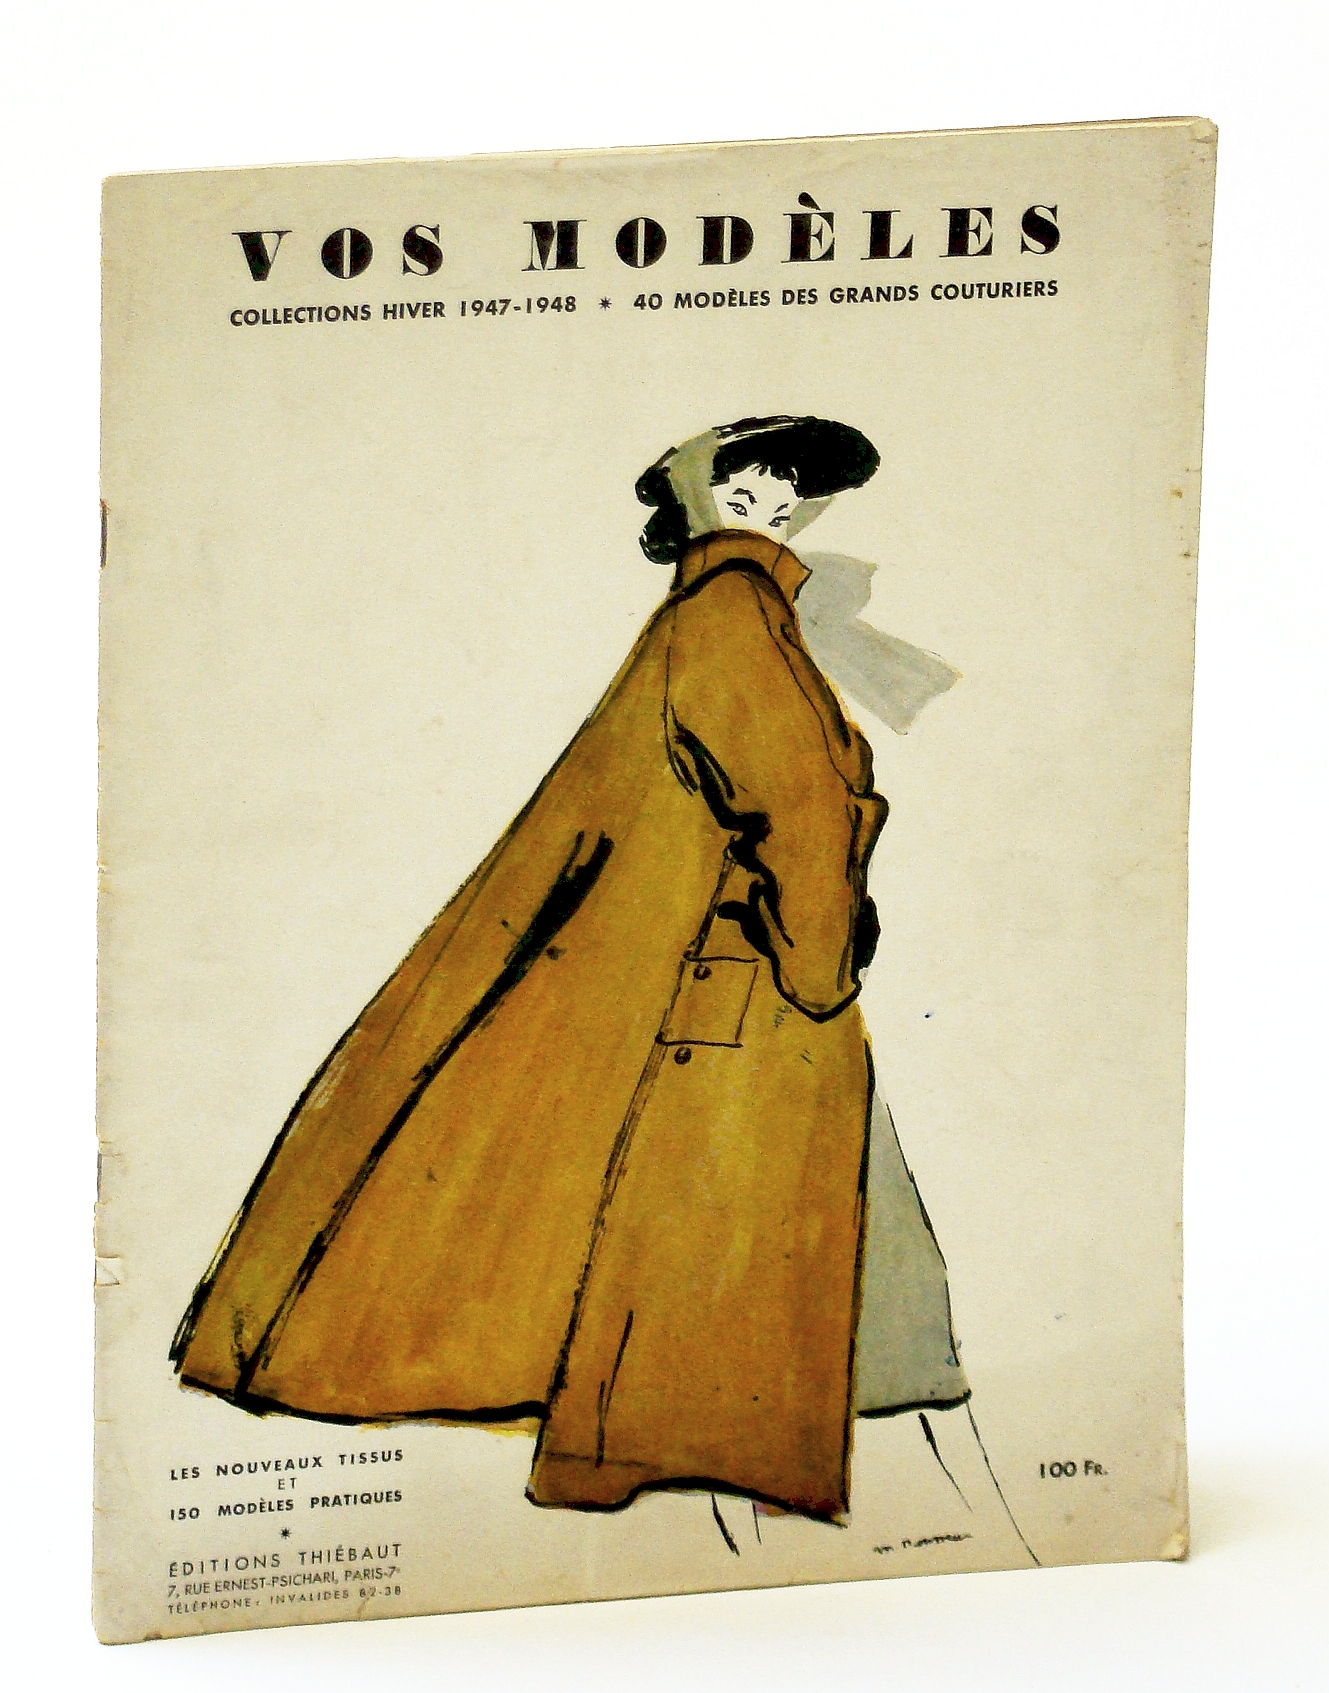 Image for Vos Modeles - Collections Hiver (Winter Collections) 1947 - 1948 - 40 Modeles Des Grans Couturiers